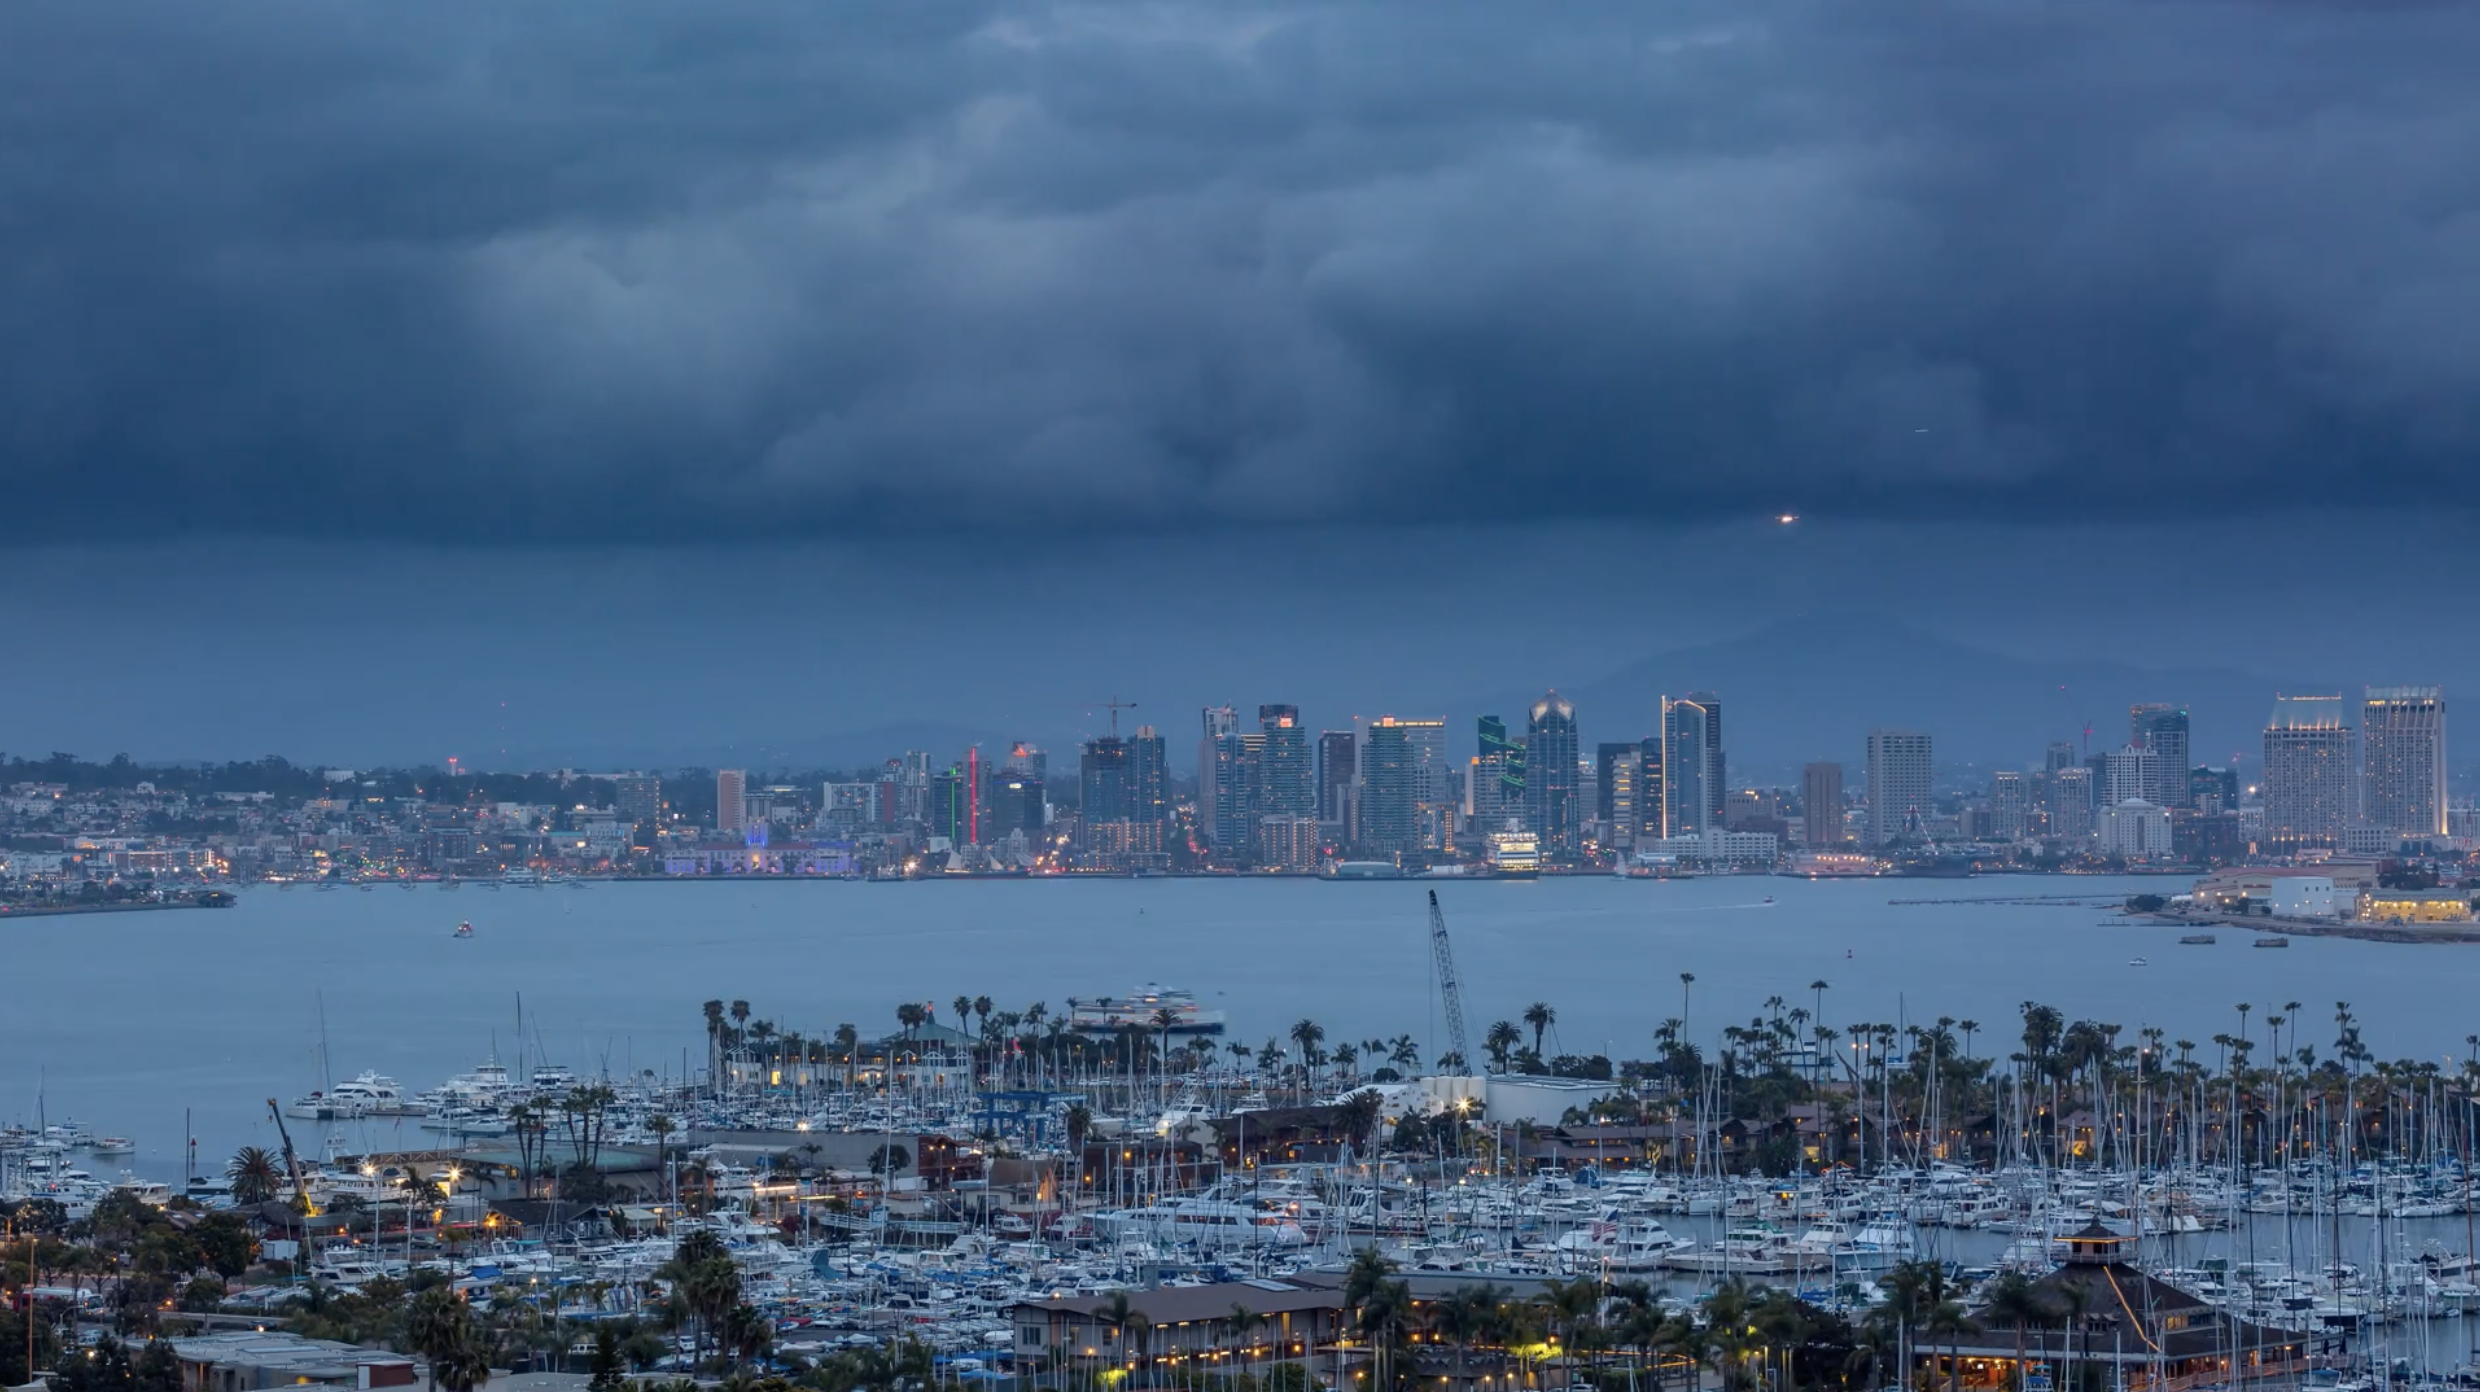 Hd Downtown San Diego Skyline Day To Night Dark Clouds Emeric S Timelapse